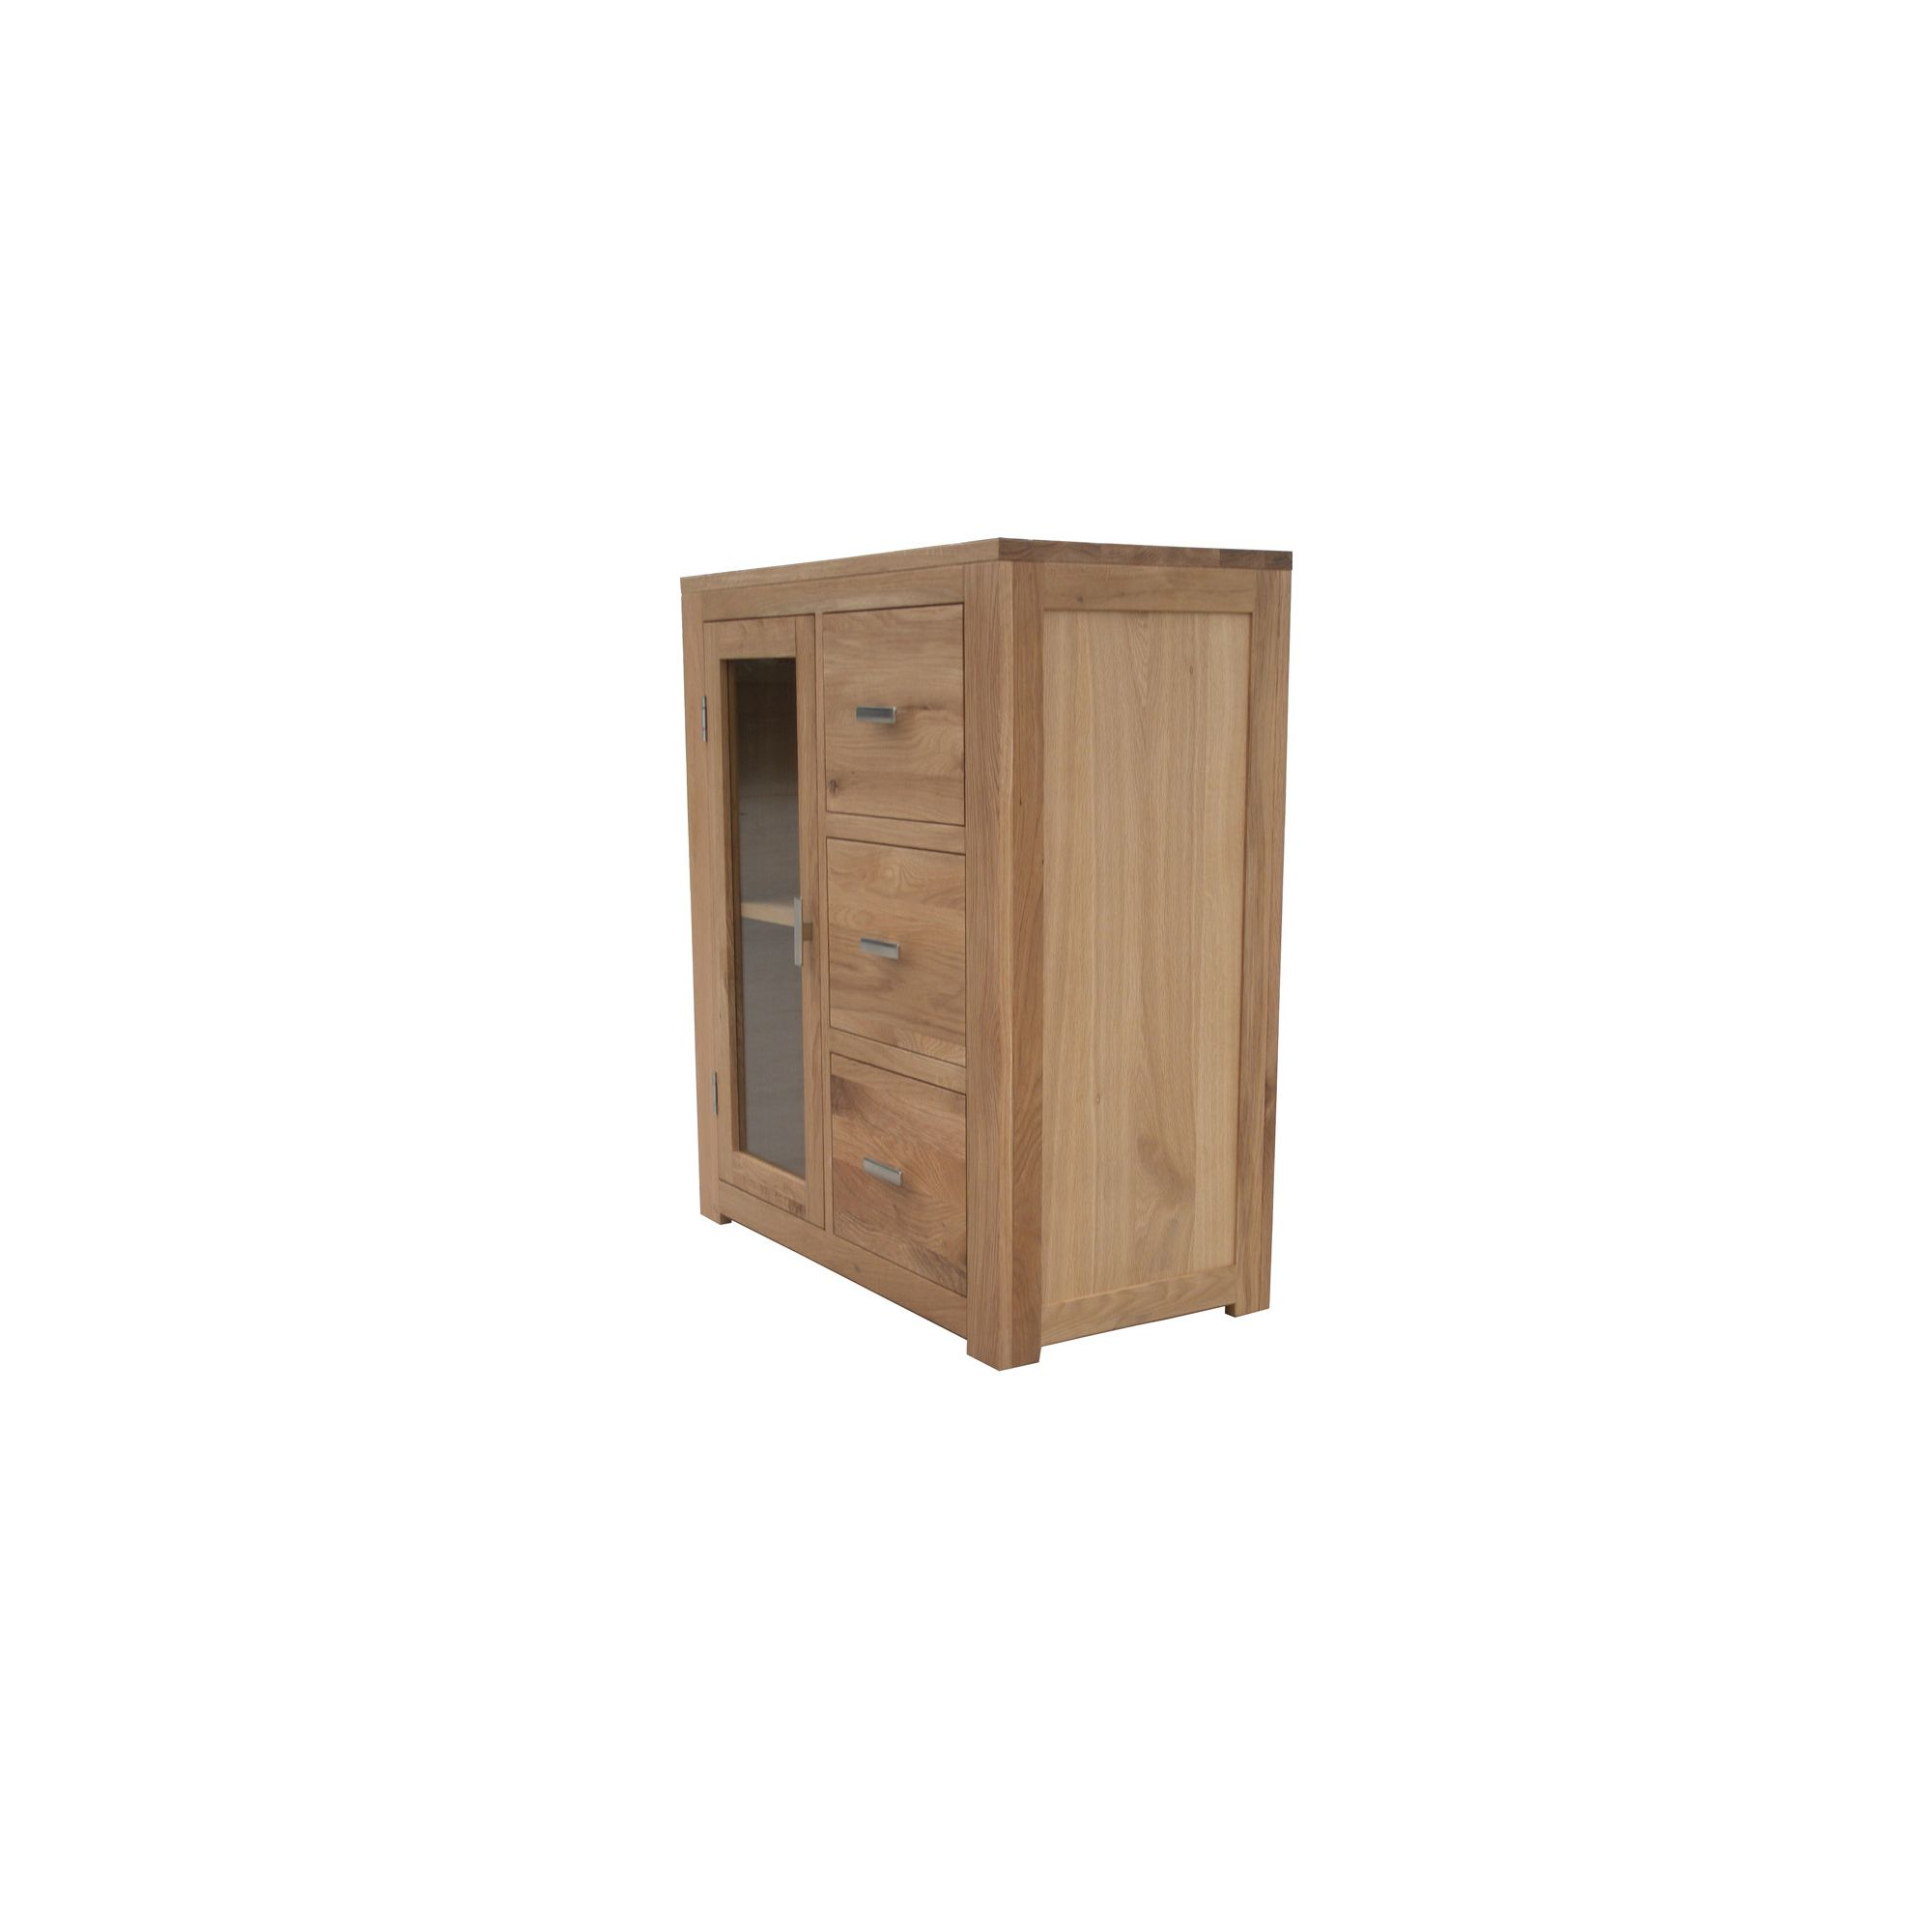 Seahorse Furniture Churchill Oak 2010 Three Drawer Entertainment Unit in Natural Oak at Tesco Direct